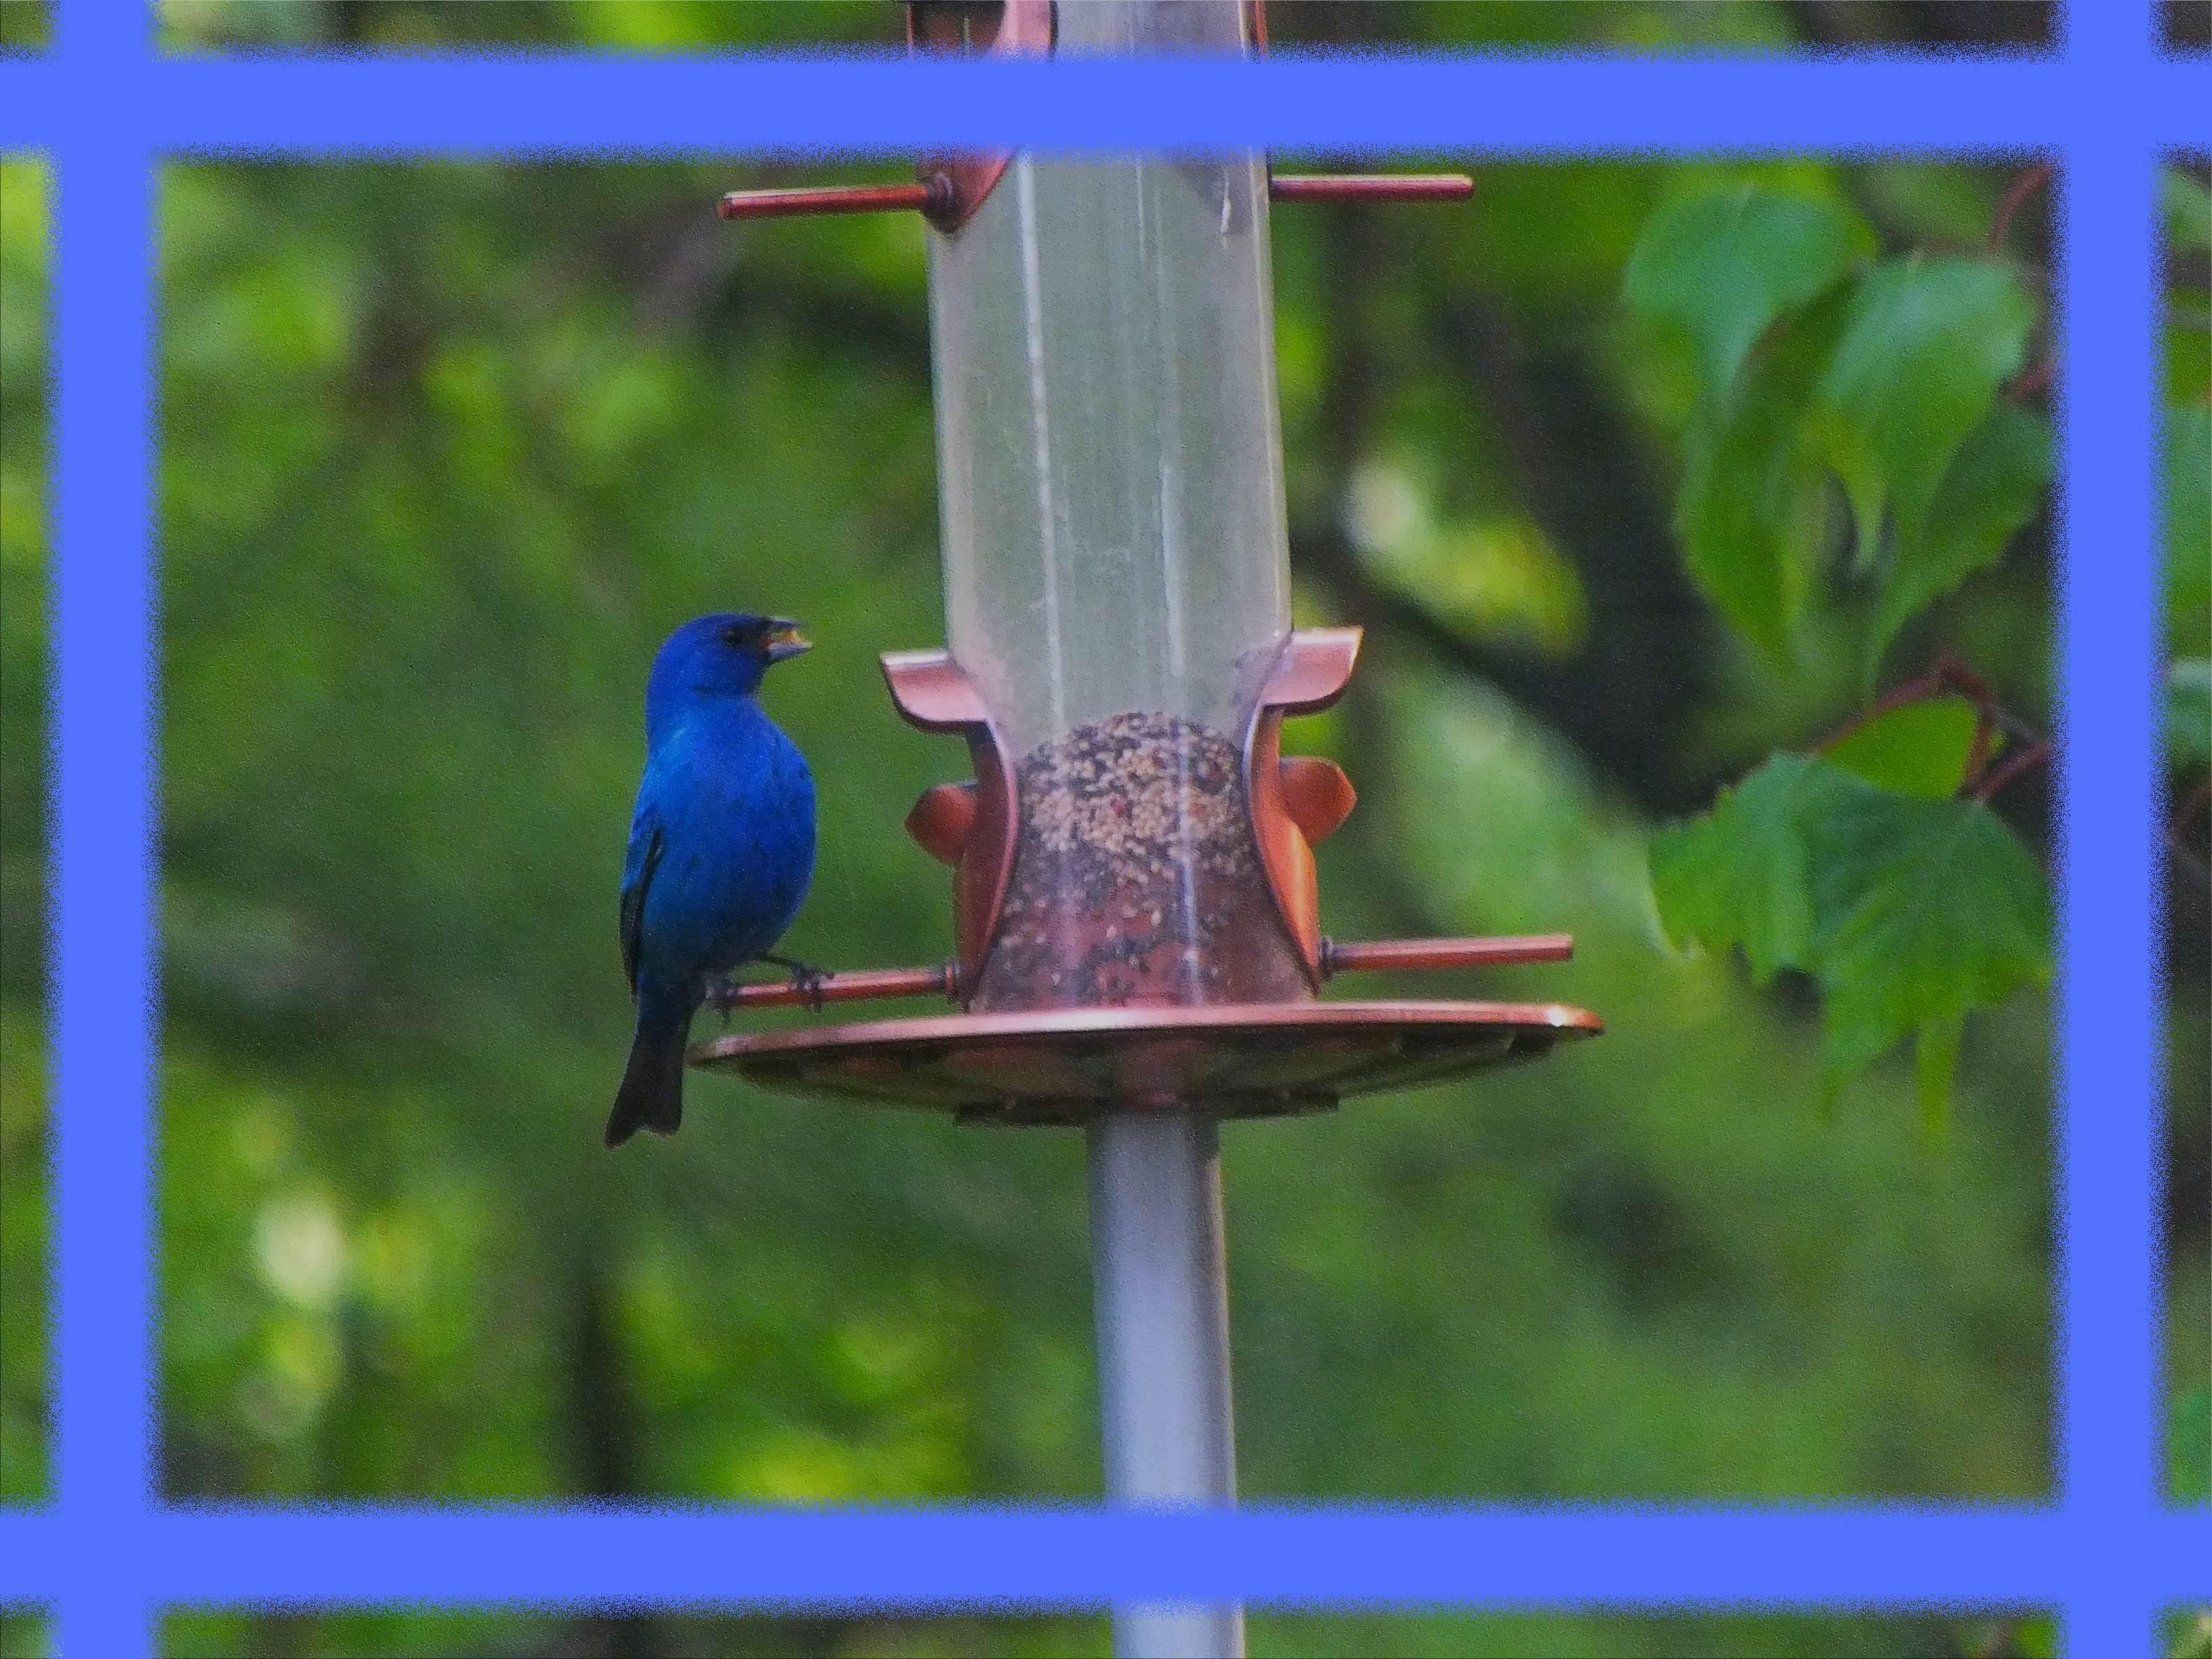 Indigo Bunting. Photo by Thomas Peace c. 2016